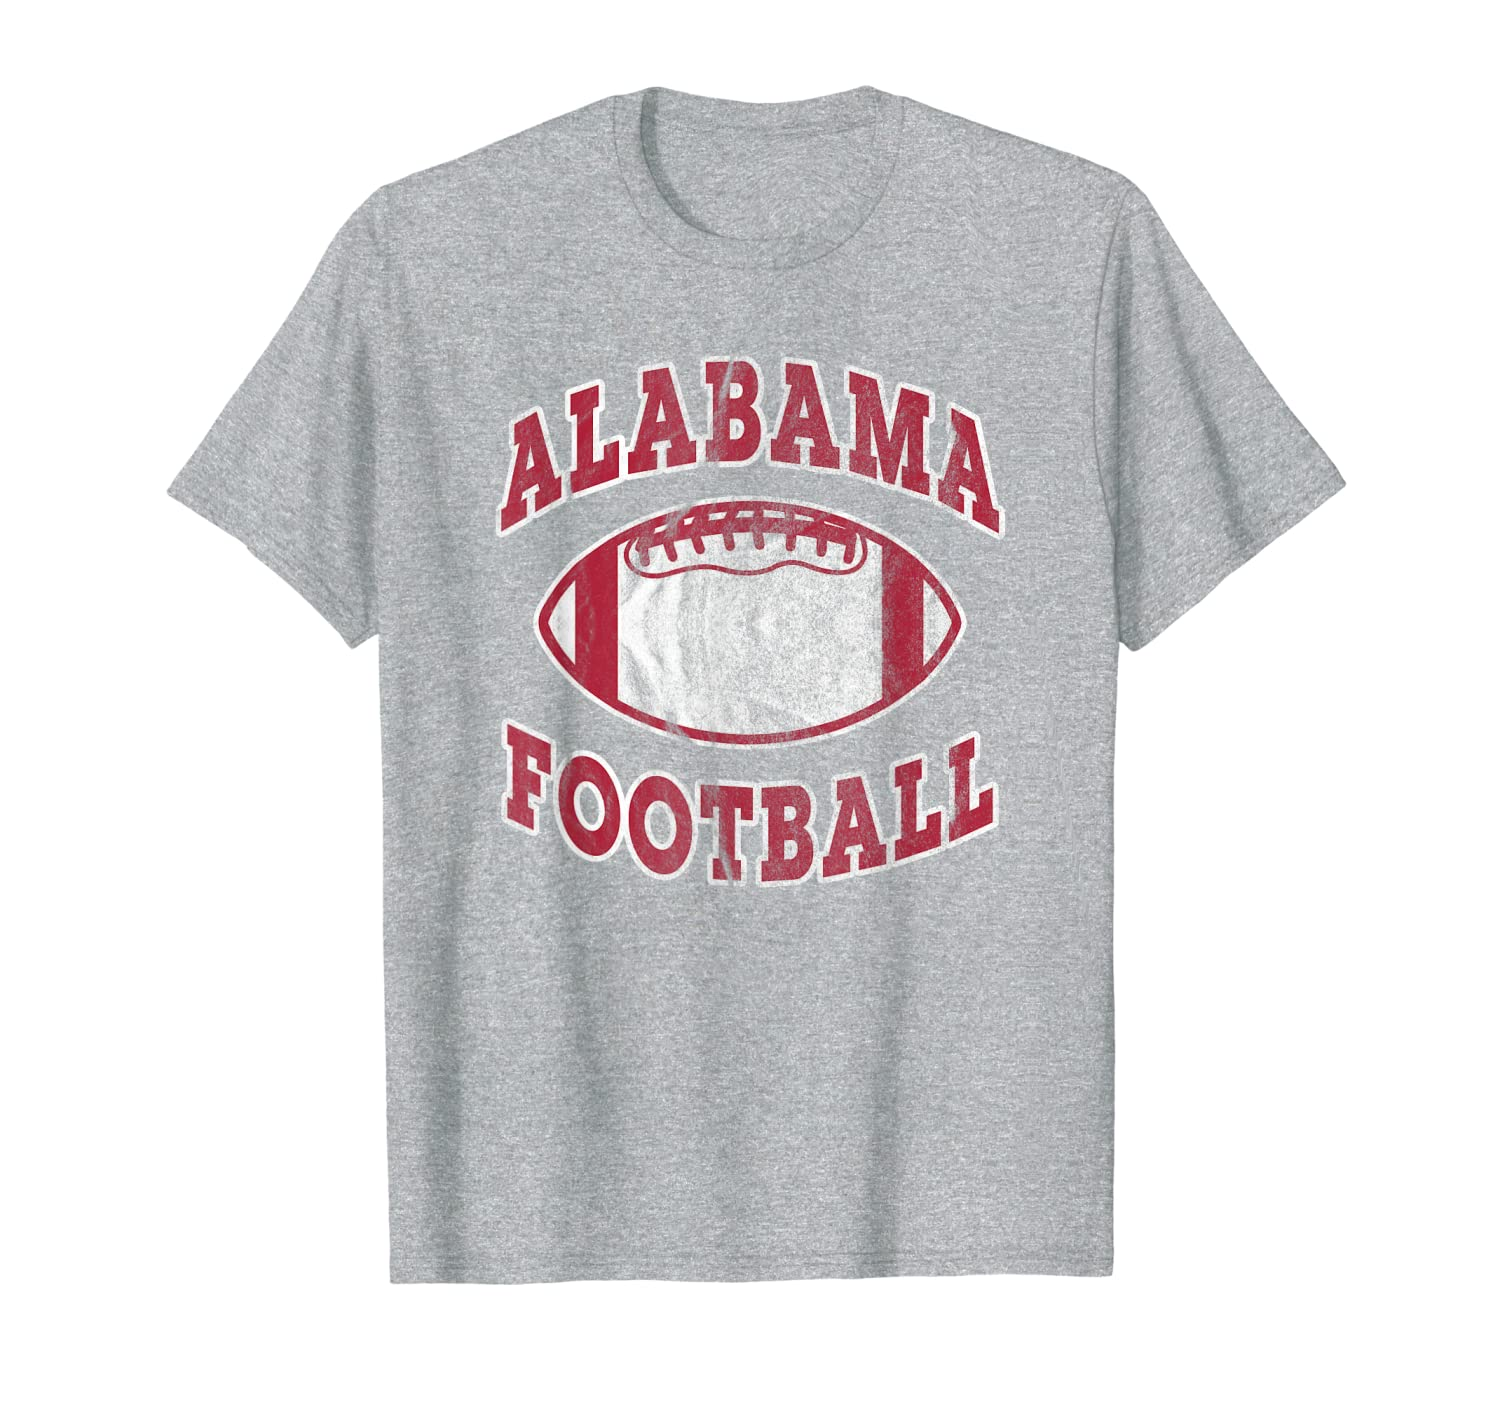 Alabama Football Vintage Distressed T-Shirt-TH